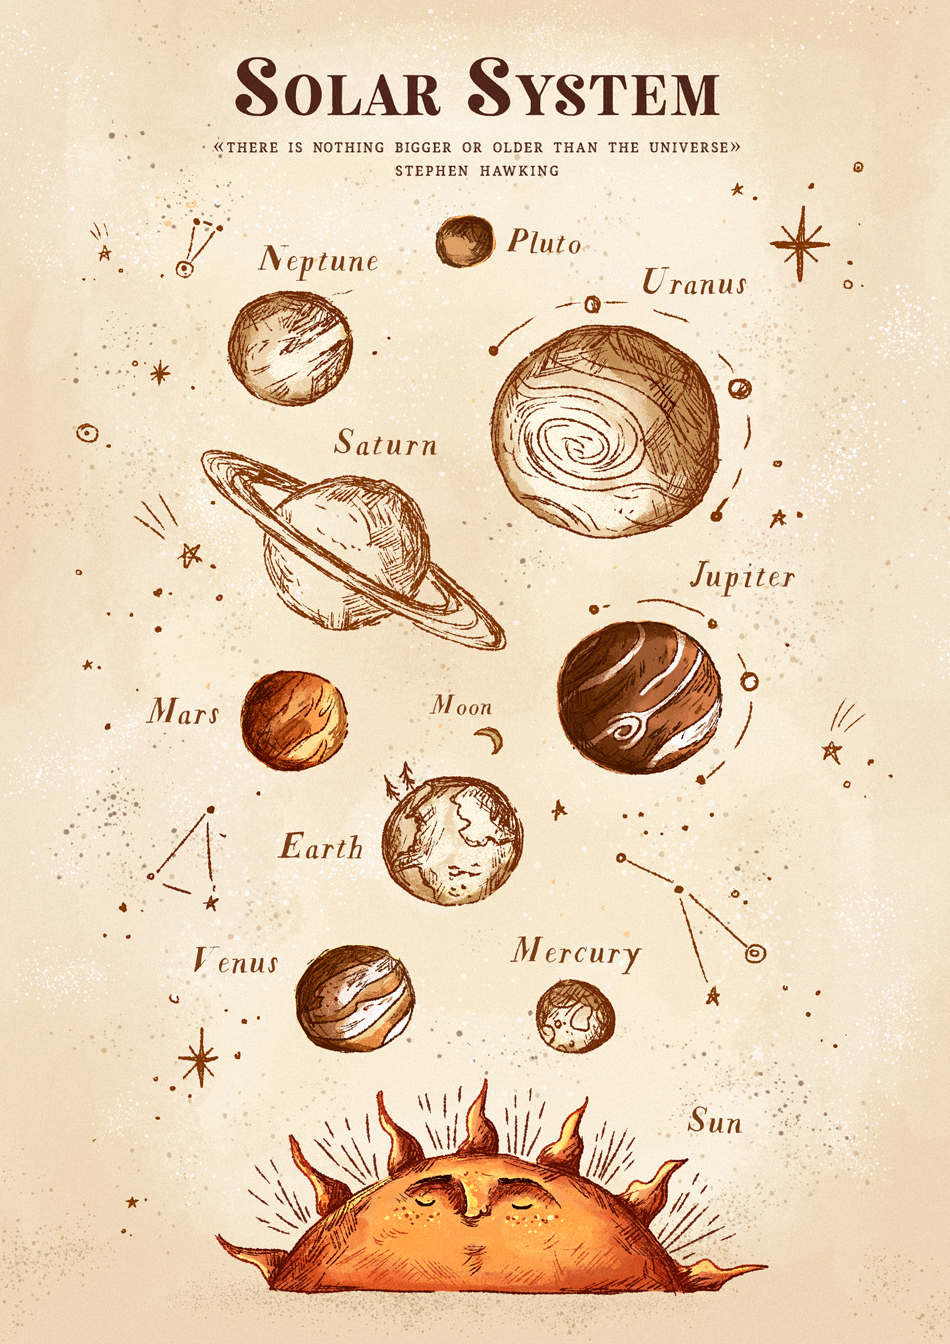 SOLAR SYSTEM Art Print | 8x10 illustrated vintage